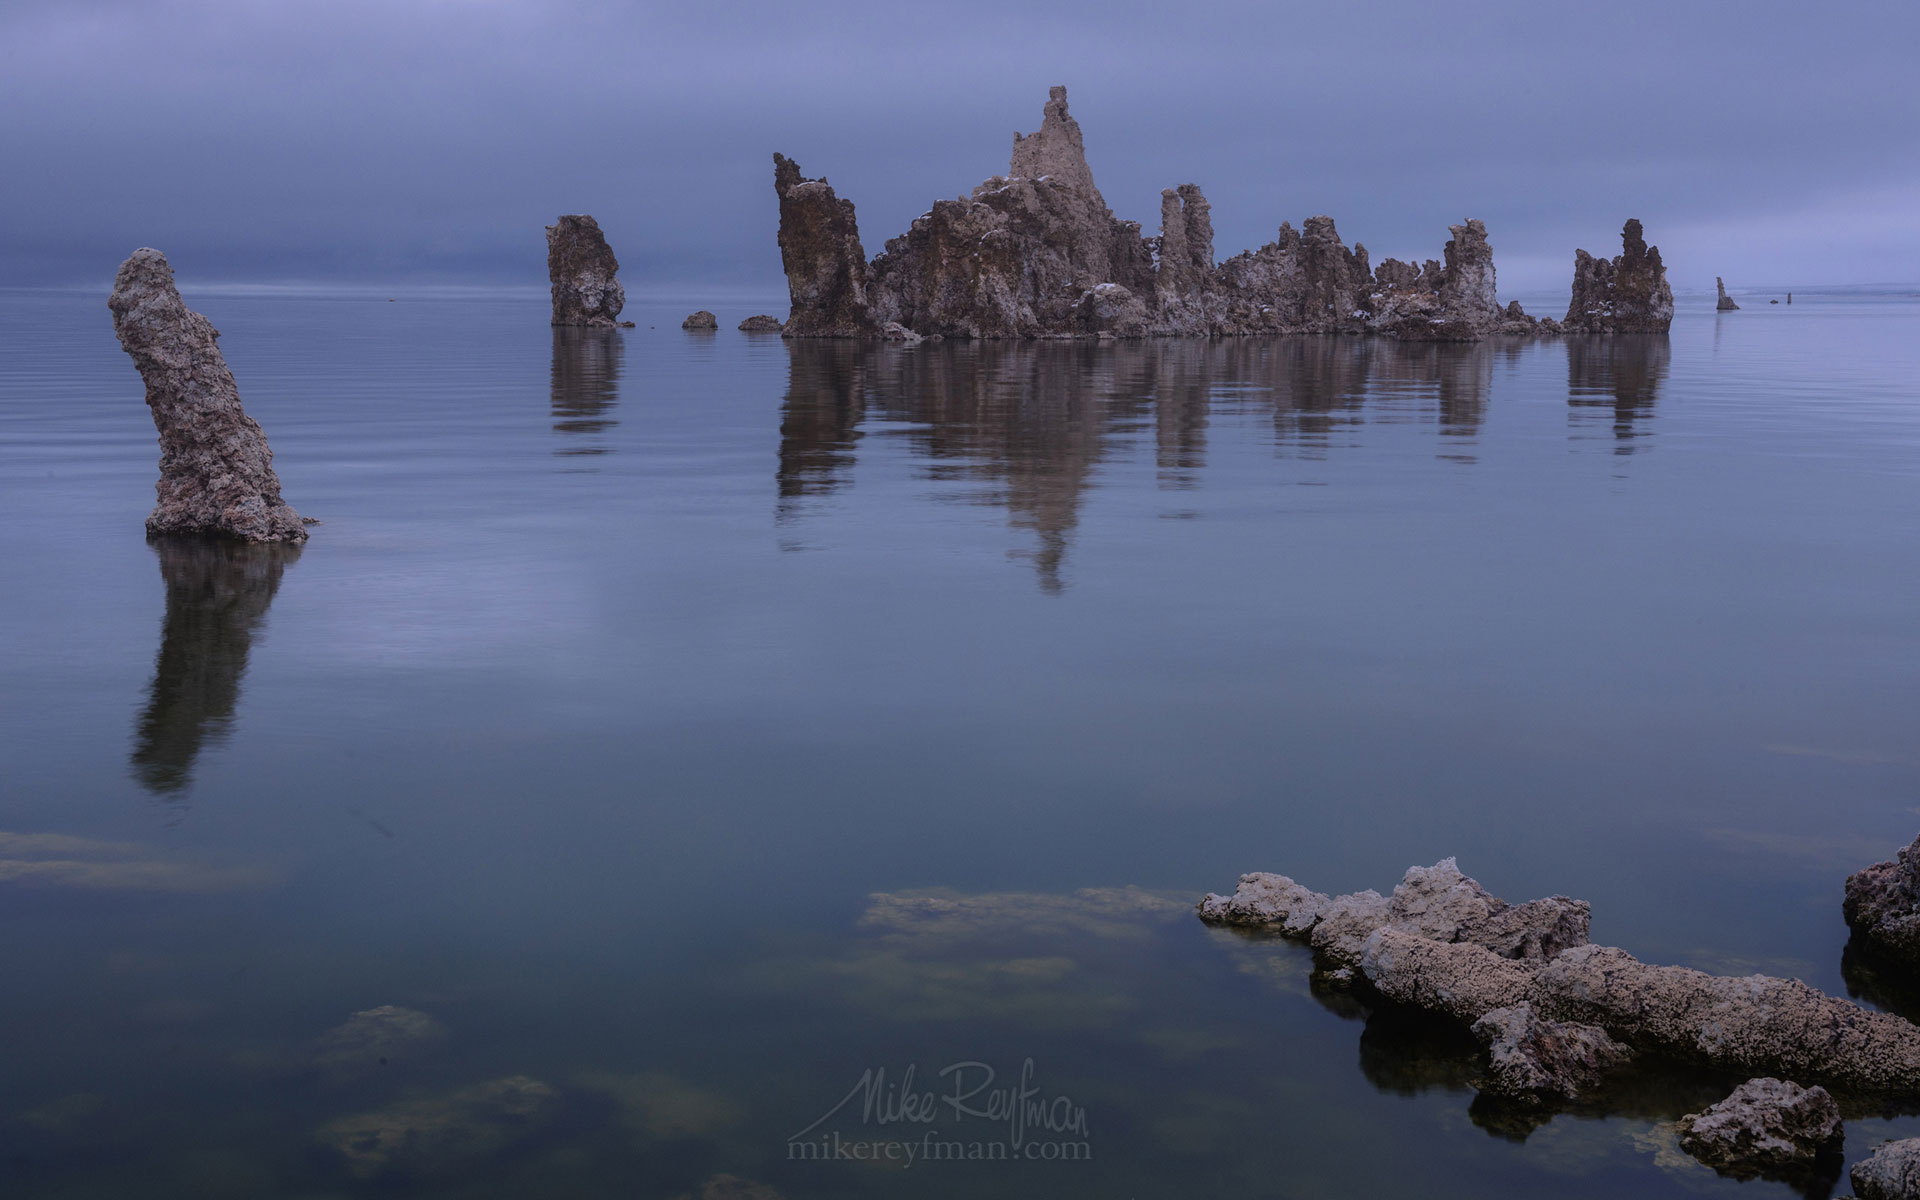 Mono Lake, Tufa State Natural Reserve, Eastern Sierra, California, USA ML1-MRN3X0740 - Mono Lake Tufa State Natural Reserve, Eastern Sierra, California - Mike Reyfman Photography